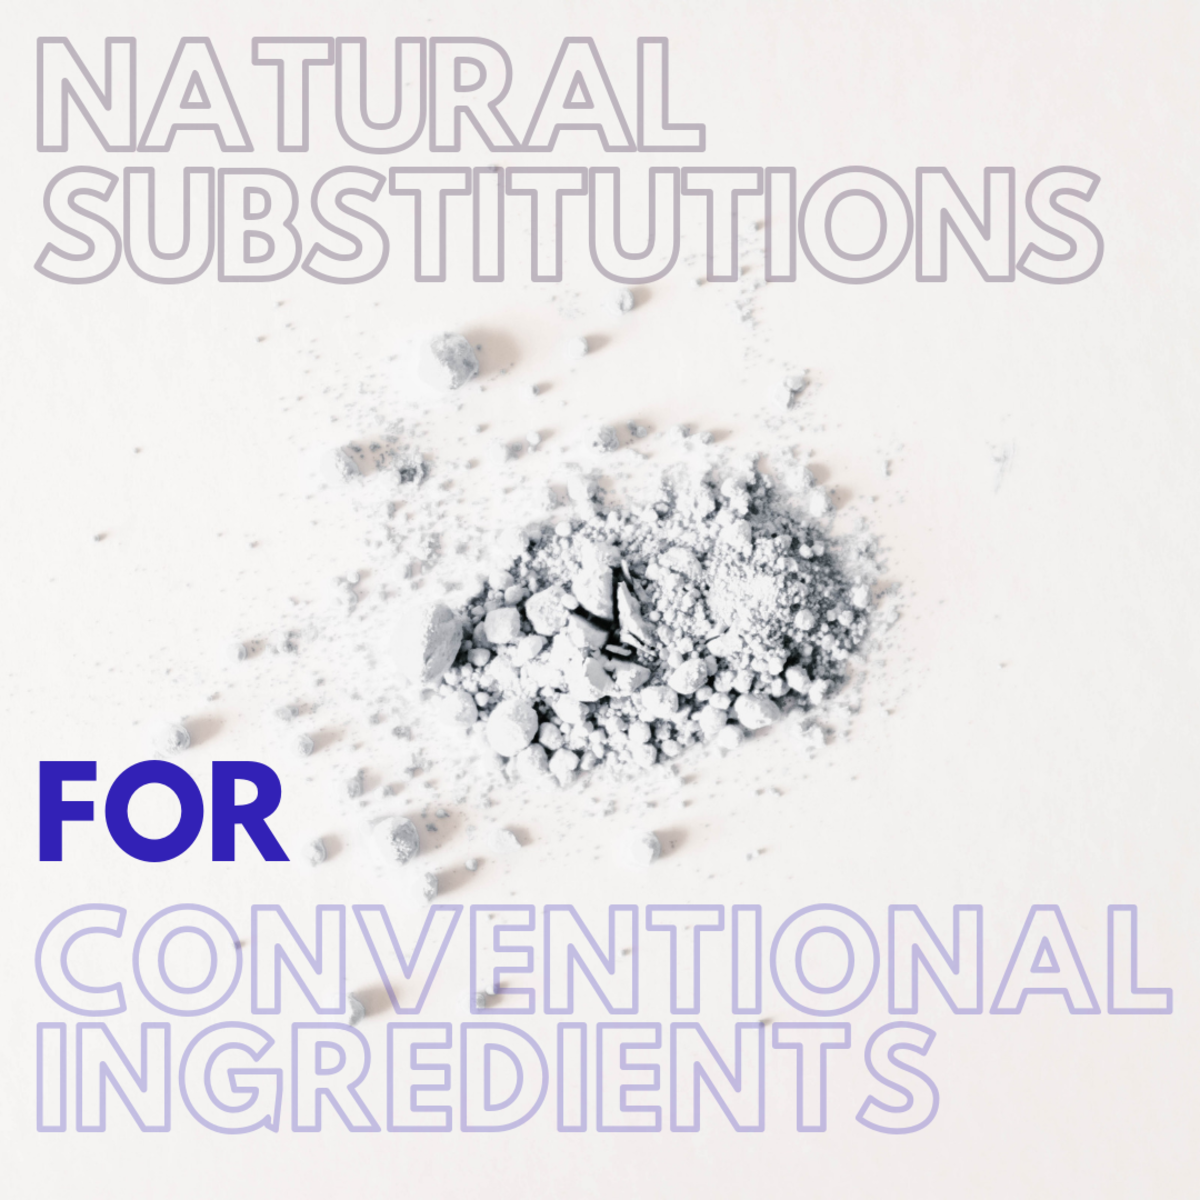 Deodorant and antiperspirant substitutions for conventional ingredients.